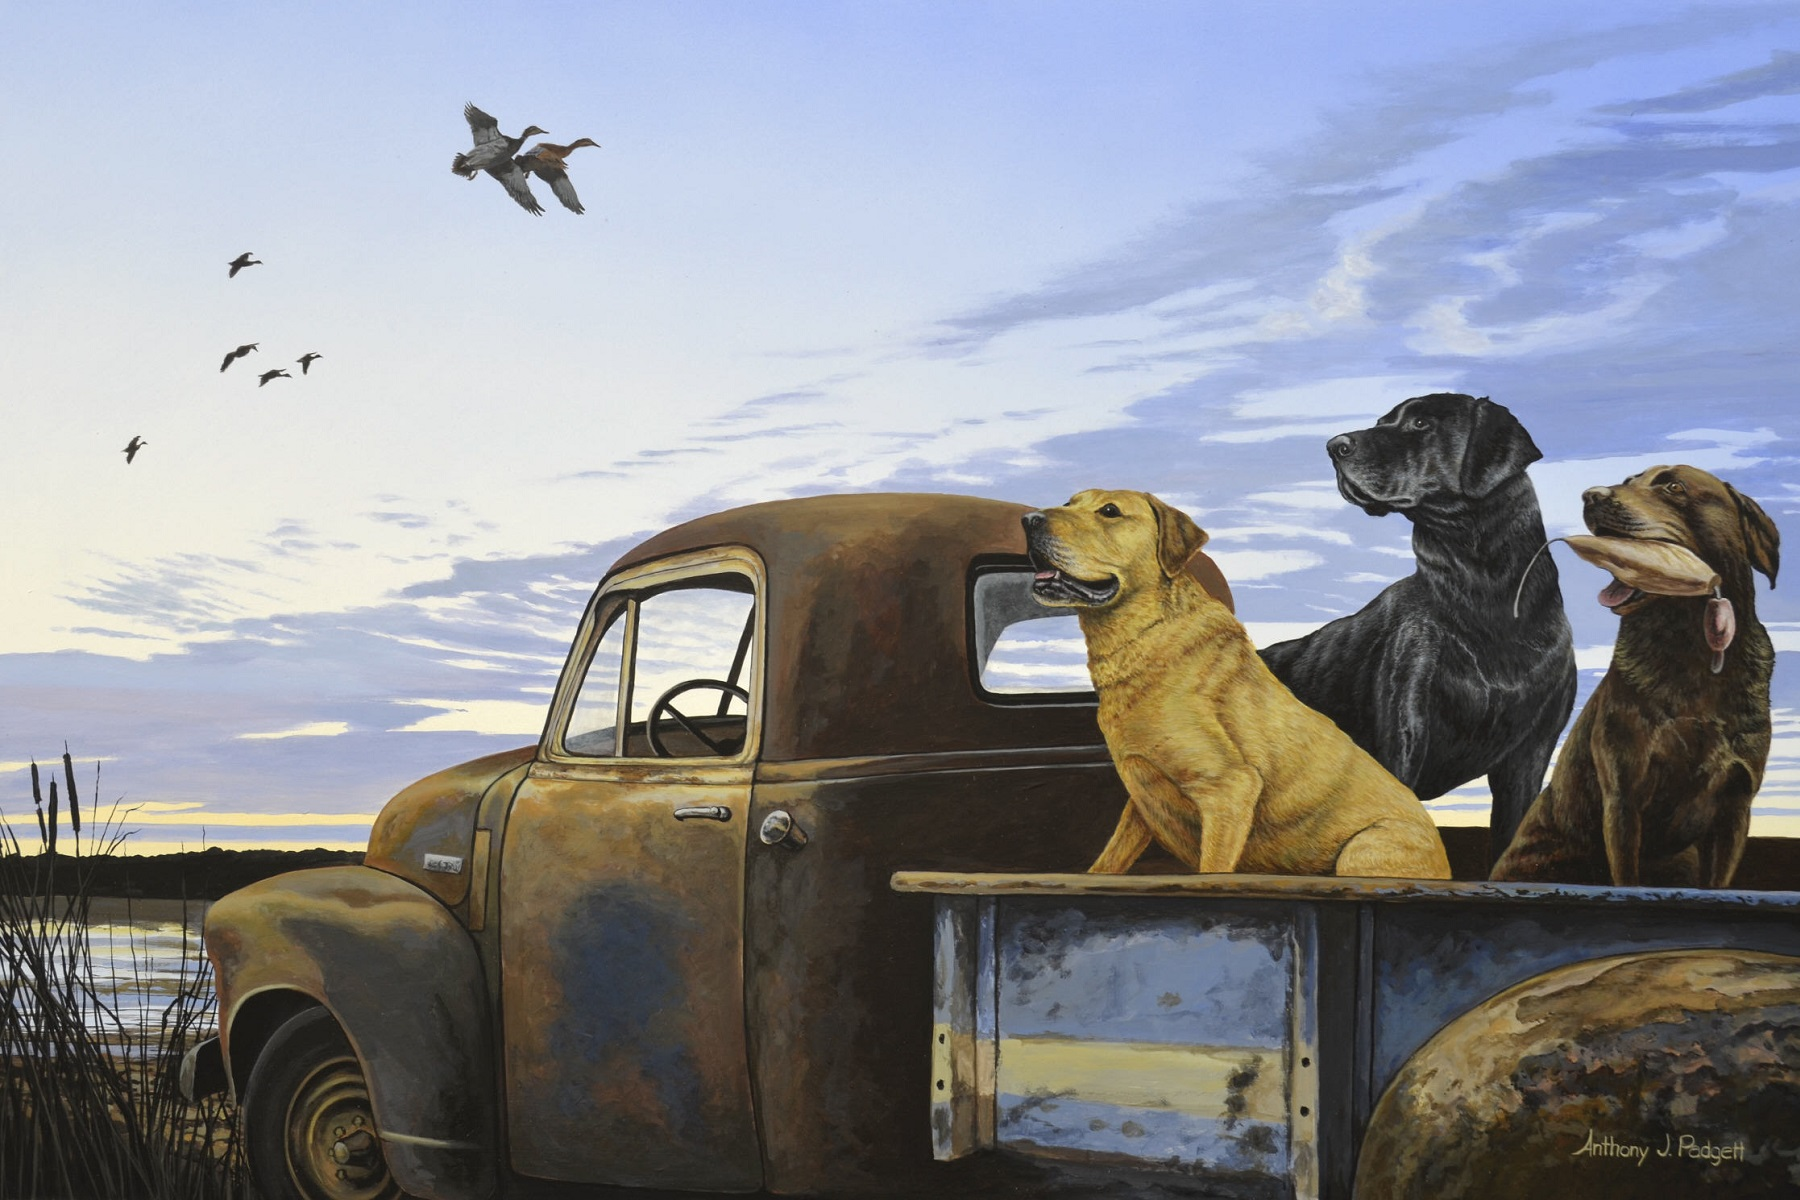 Full Load by Anthony J. Padgett